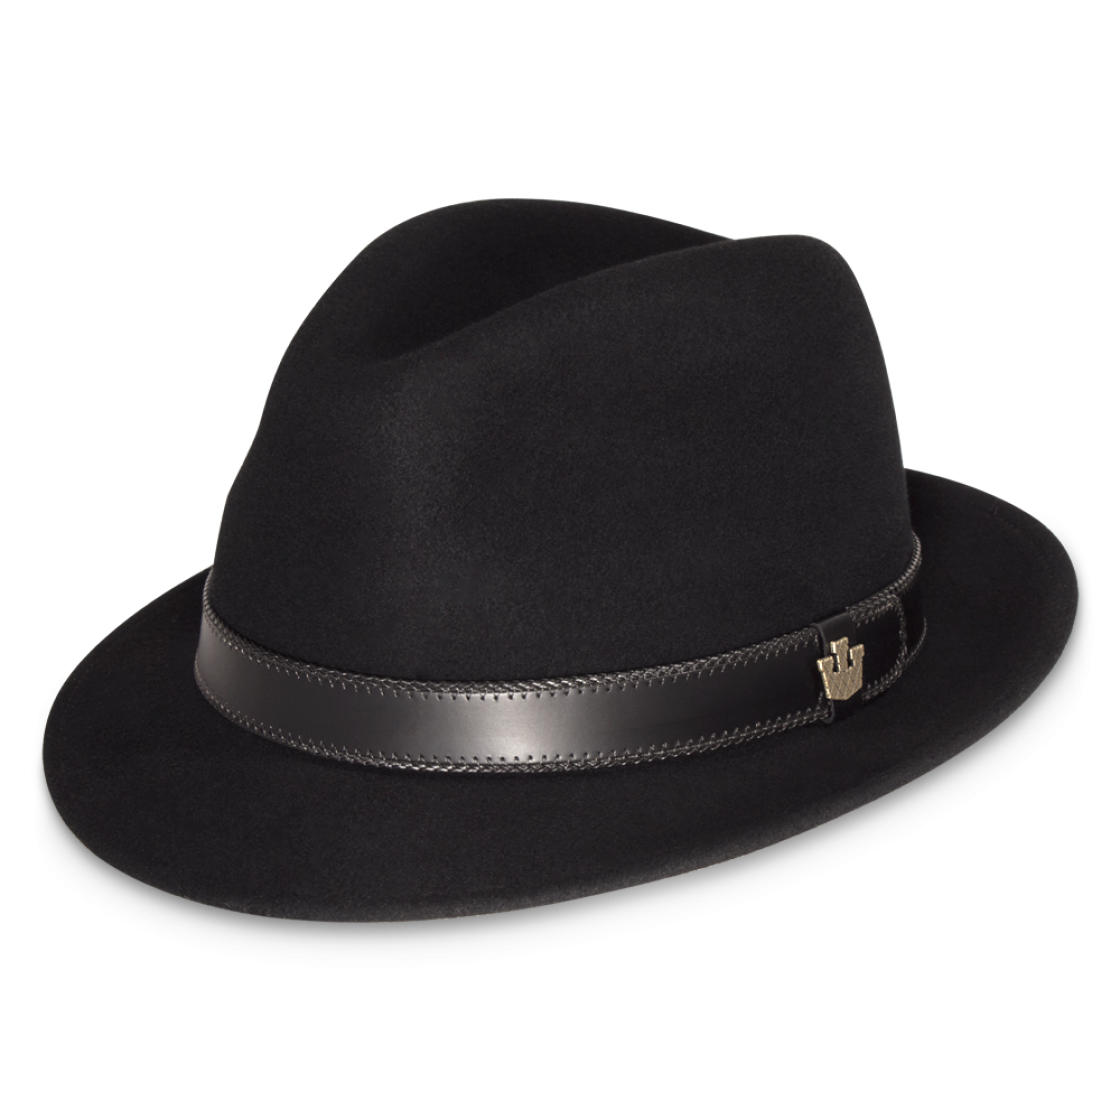 Png images free download. Fedora clipart swag hat